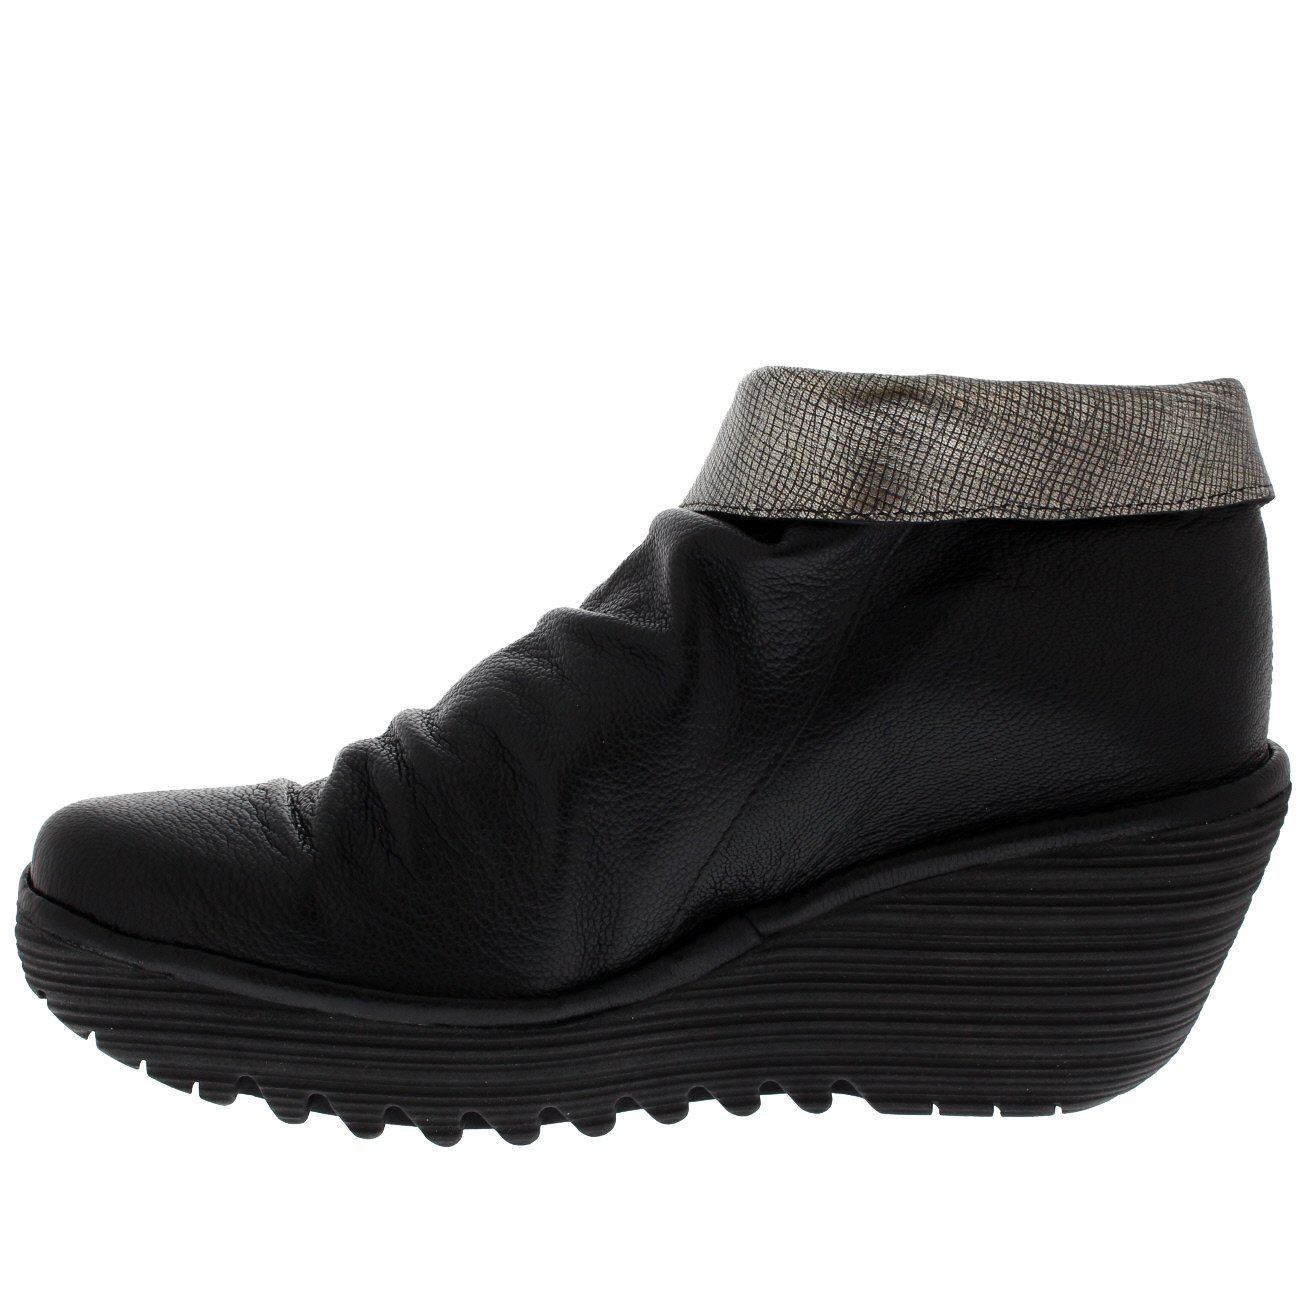 e226745dcd7 Fly London Womens Yoxi Casual Mousse Leather Black Wedge Heel Ankle Boot -  Black Silver - 10  Amazon.co.uk  Shoes   Bags